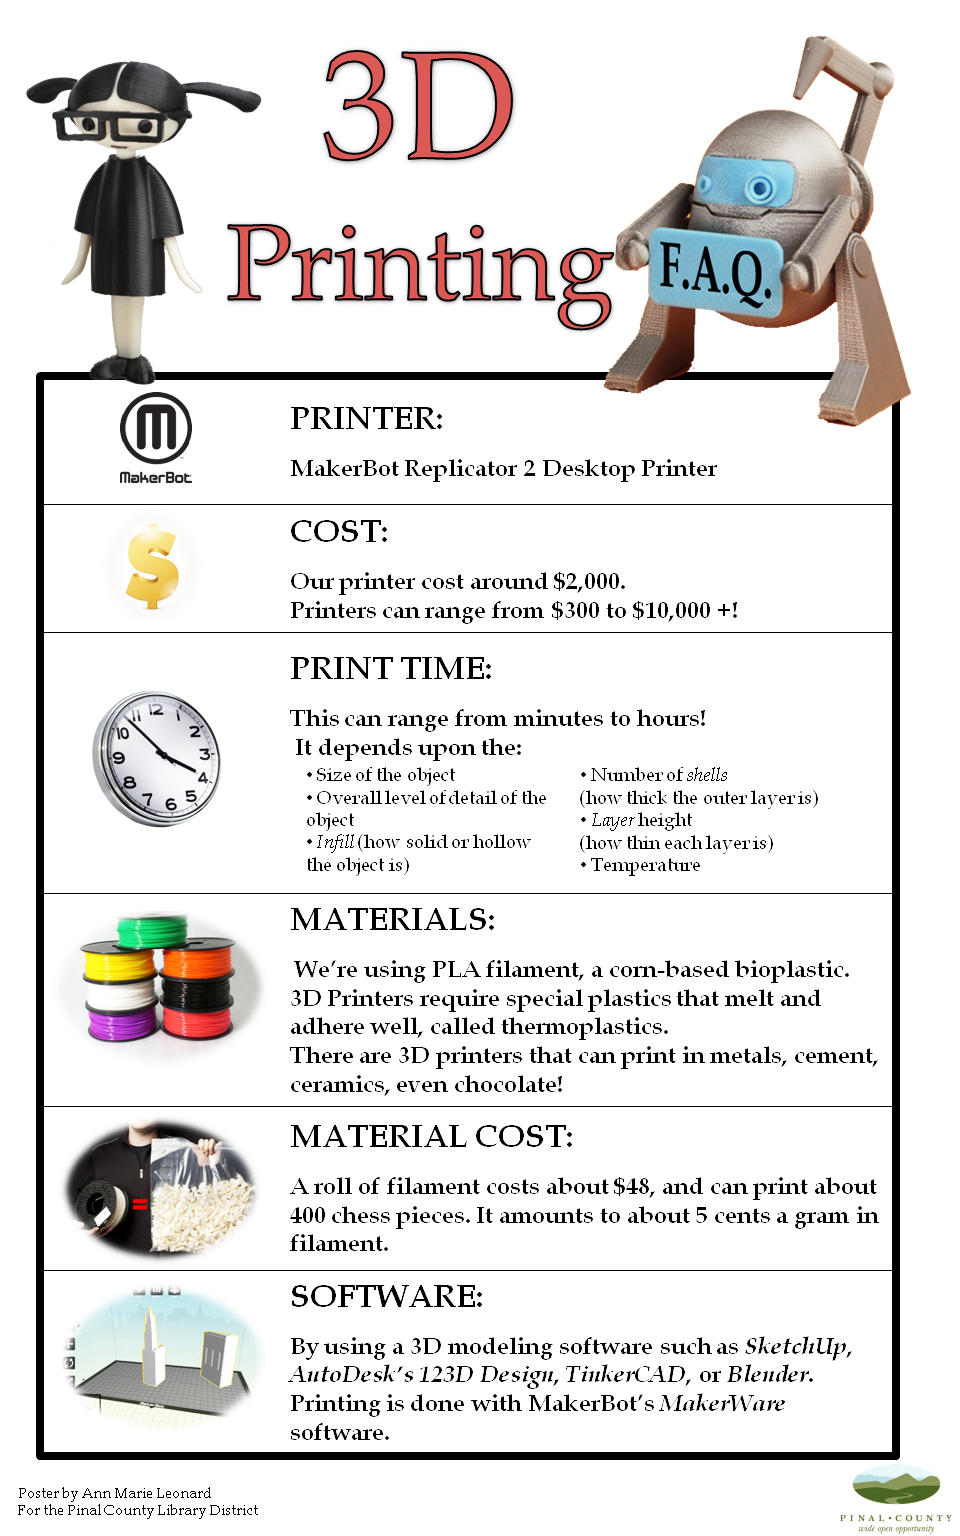 3d Printing Faq Poster Poster Answering Frequently Asked Questions About 3d Printing And The Makerbot Replicator 2 Cr 3dprinting Design 3d Printing Prints